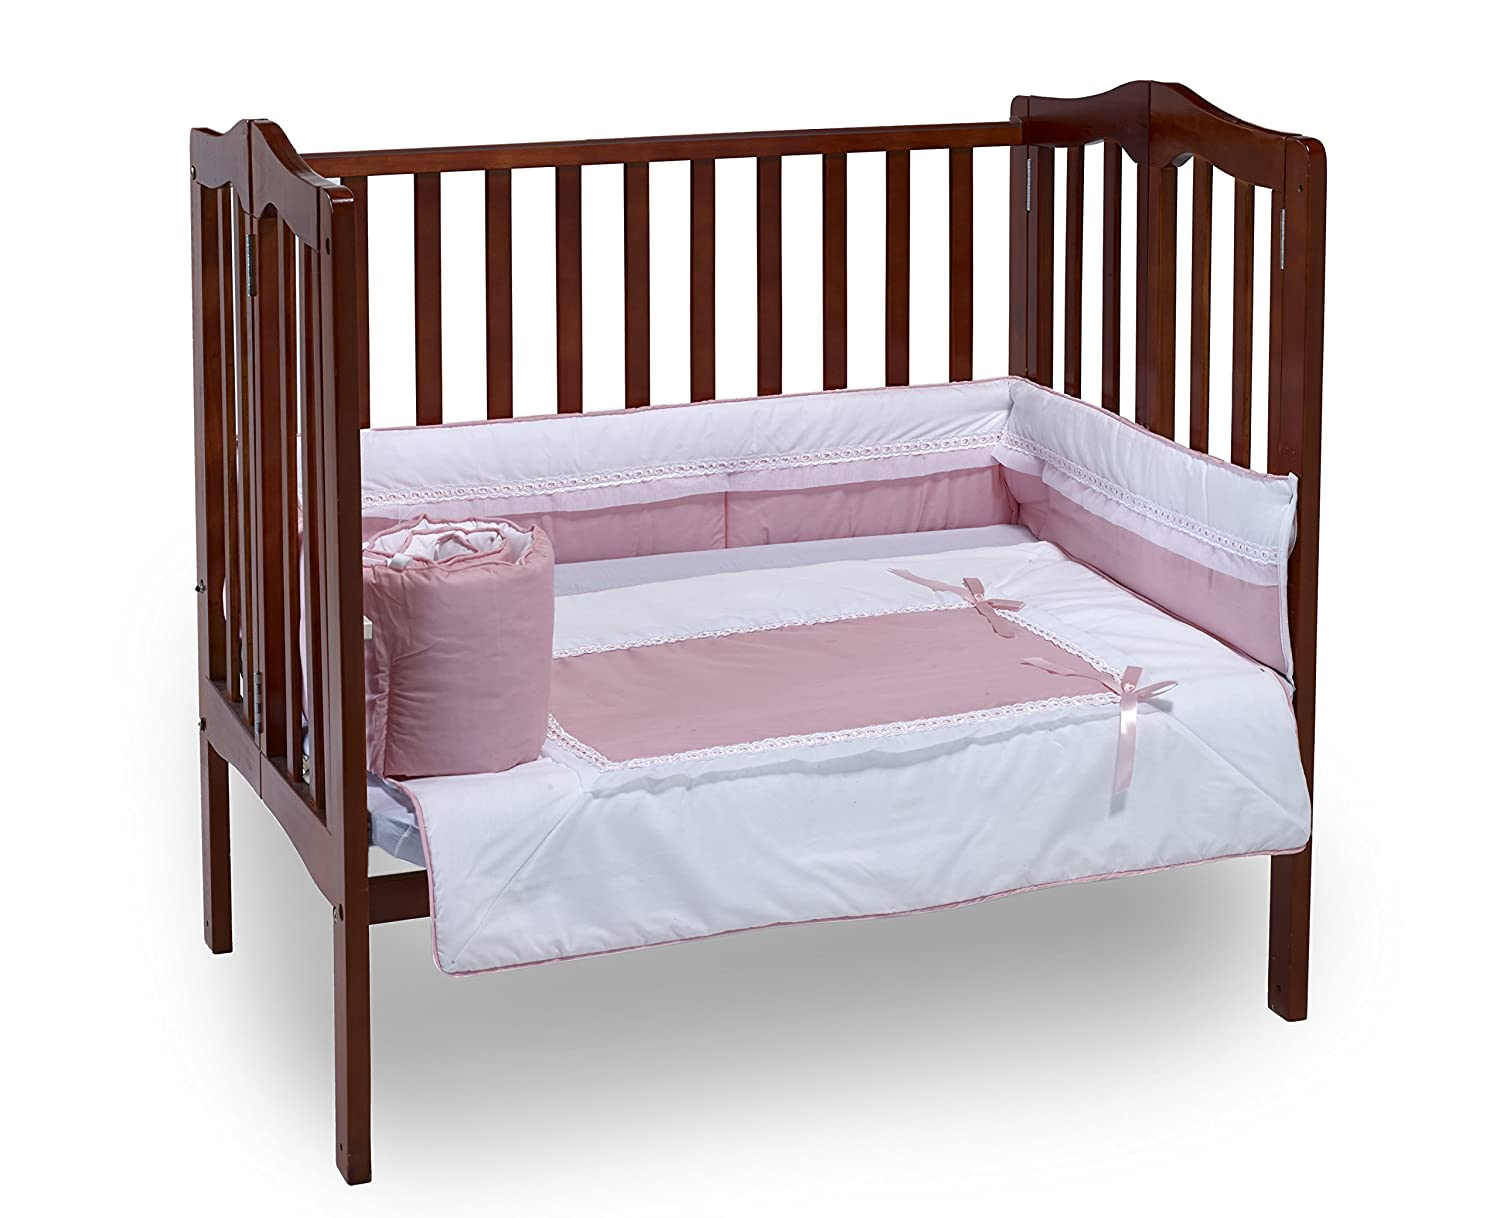 Baby Doll Bedding Royal Mini Crib/Port-a-Crib Bedding Set, Pink